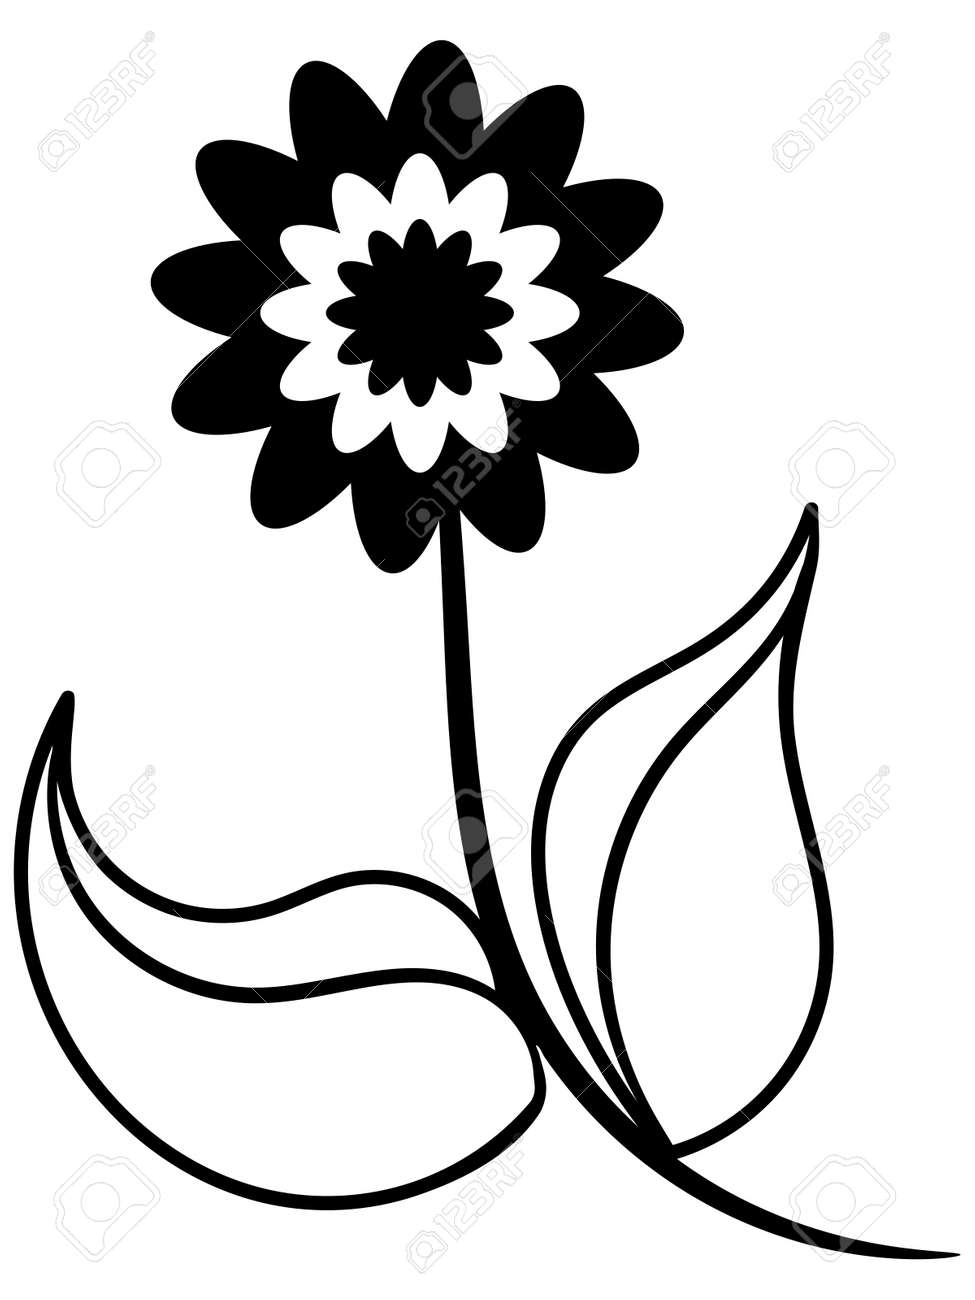 Black and white silhouette of beautiful flower Stock Photo - 19337601